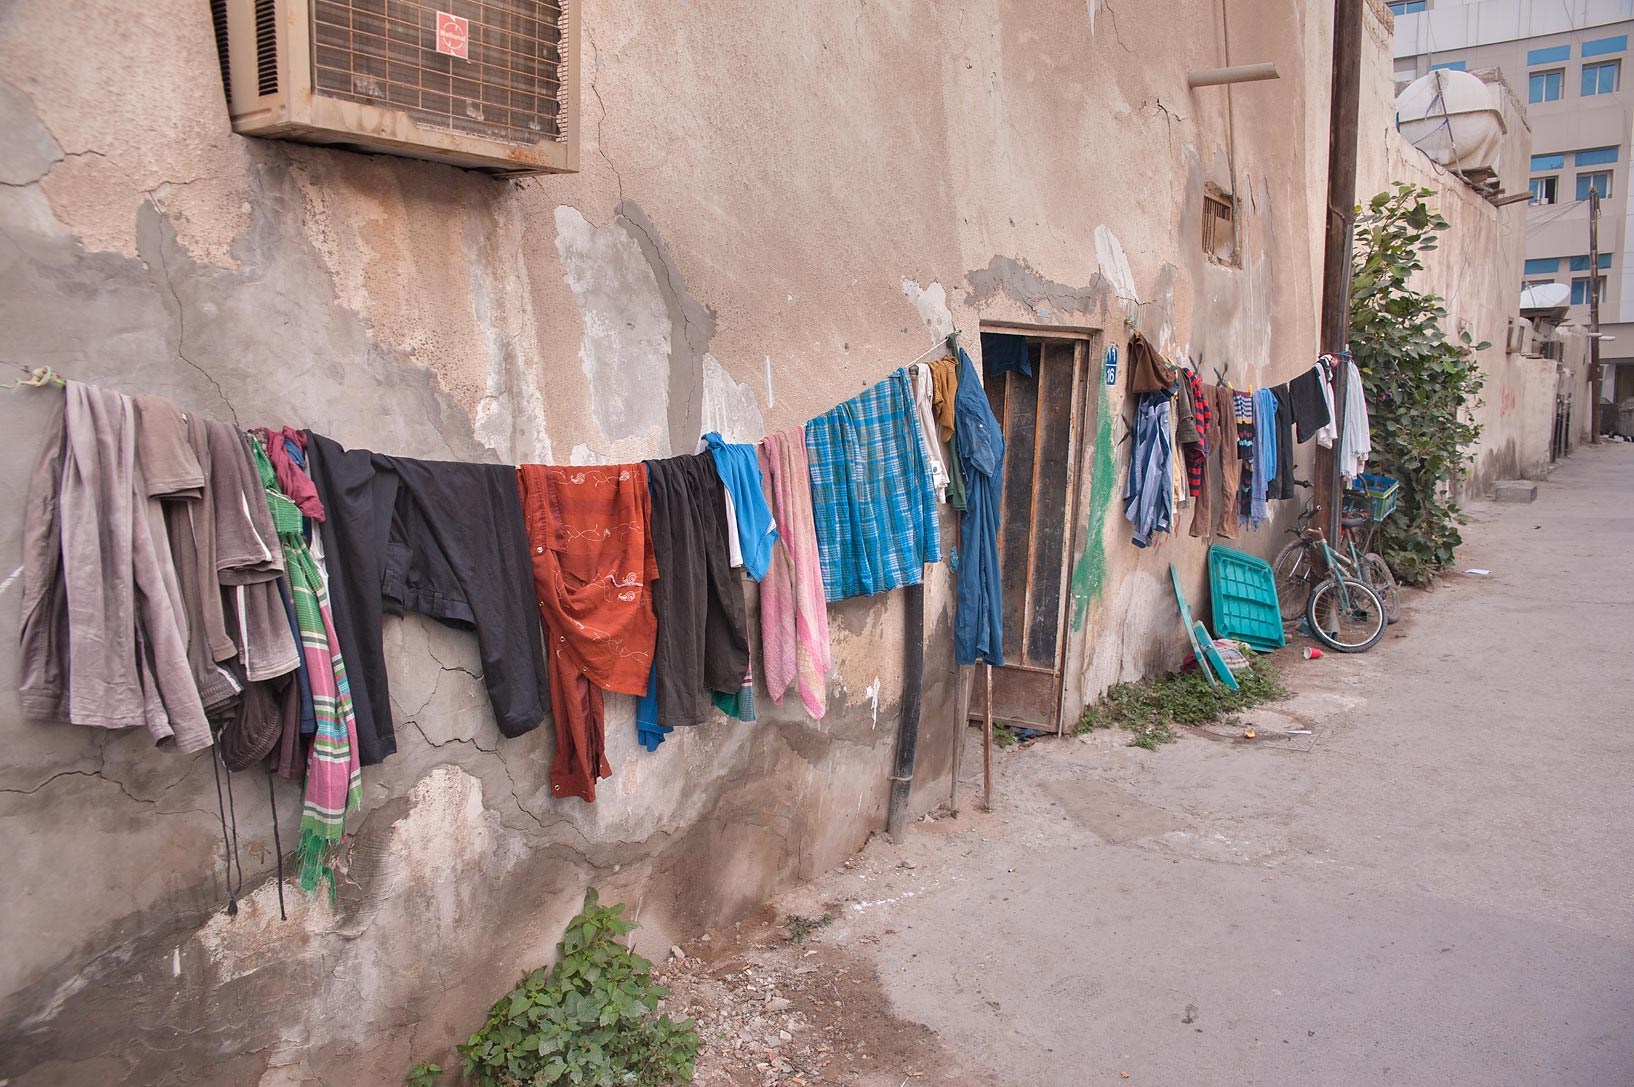 Hanging laundry on Umm Wishad St. in Musheirib neighborhood. Doha, Qatar